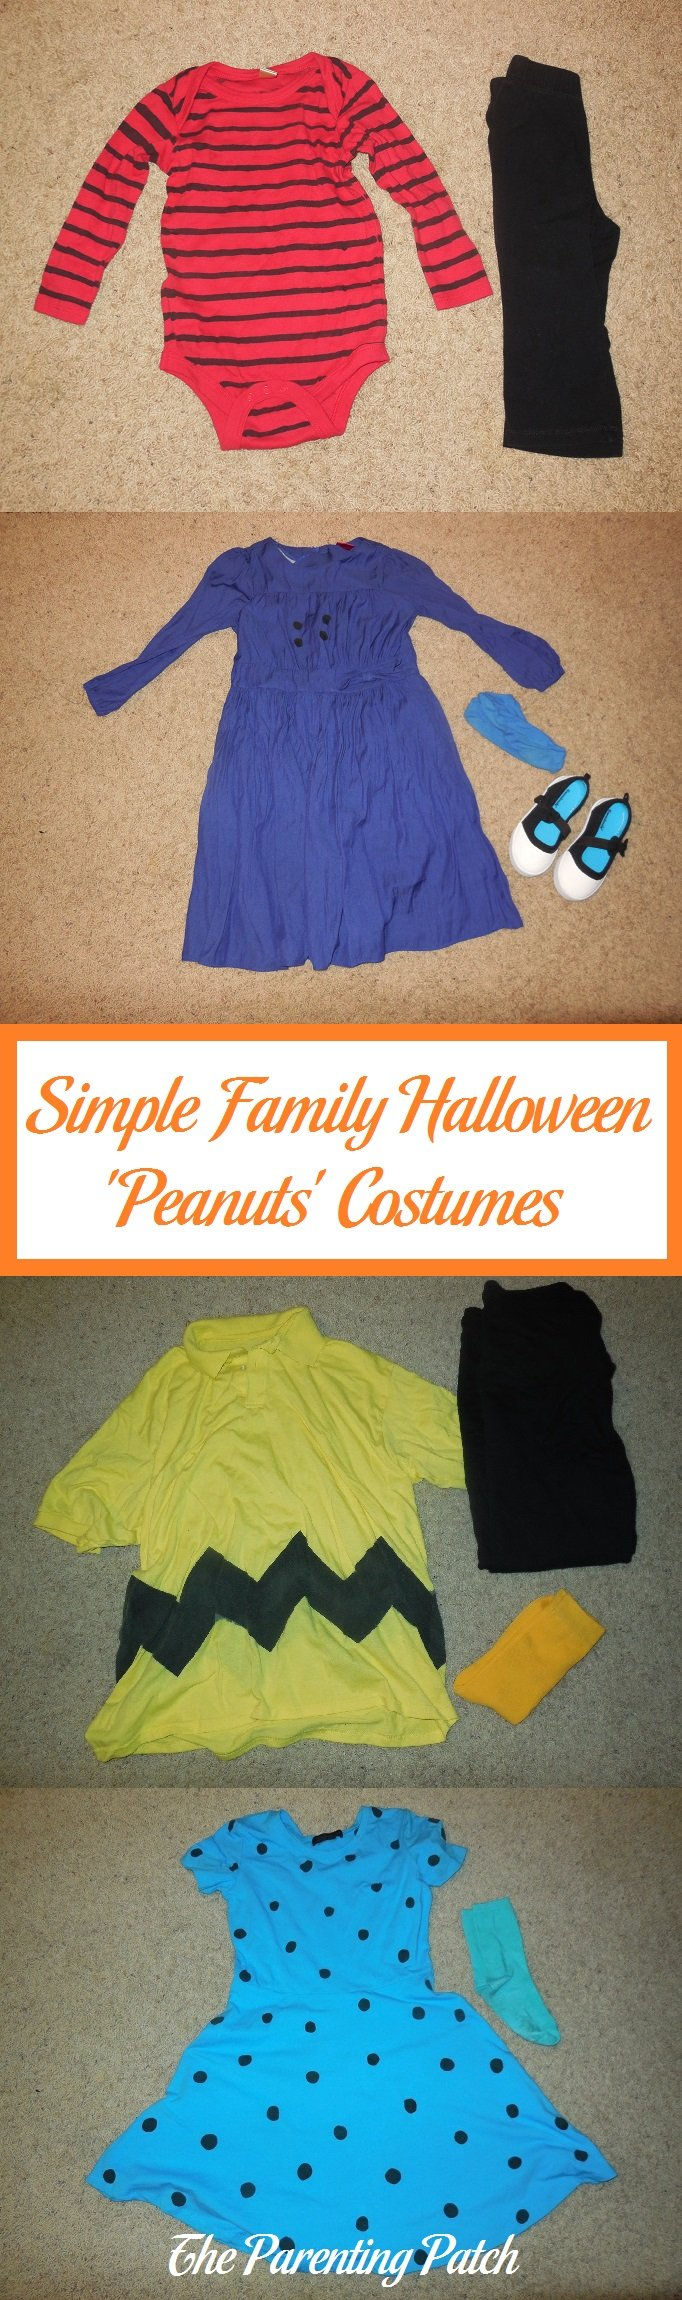 Simple Family Halloween 'Peanuts' Costumes